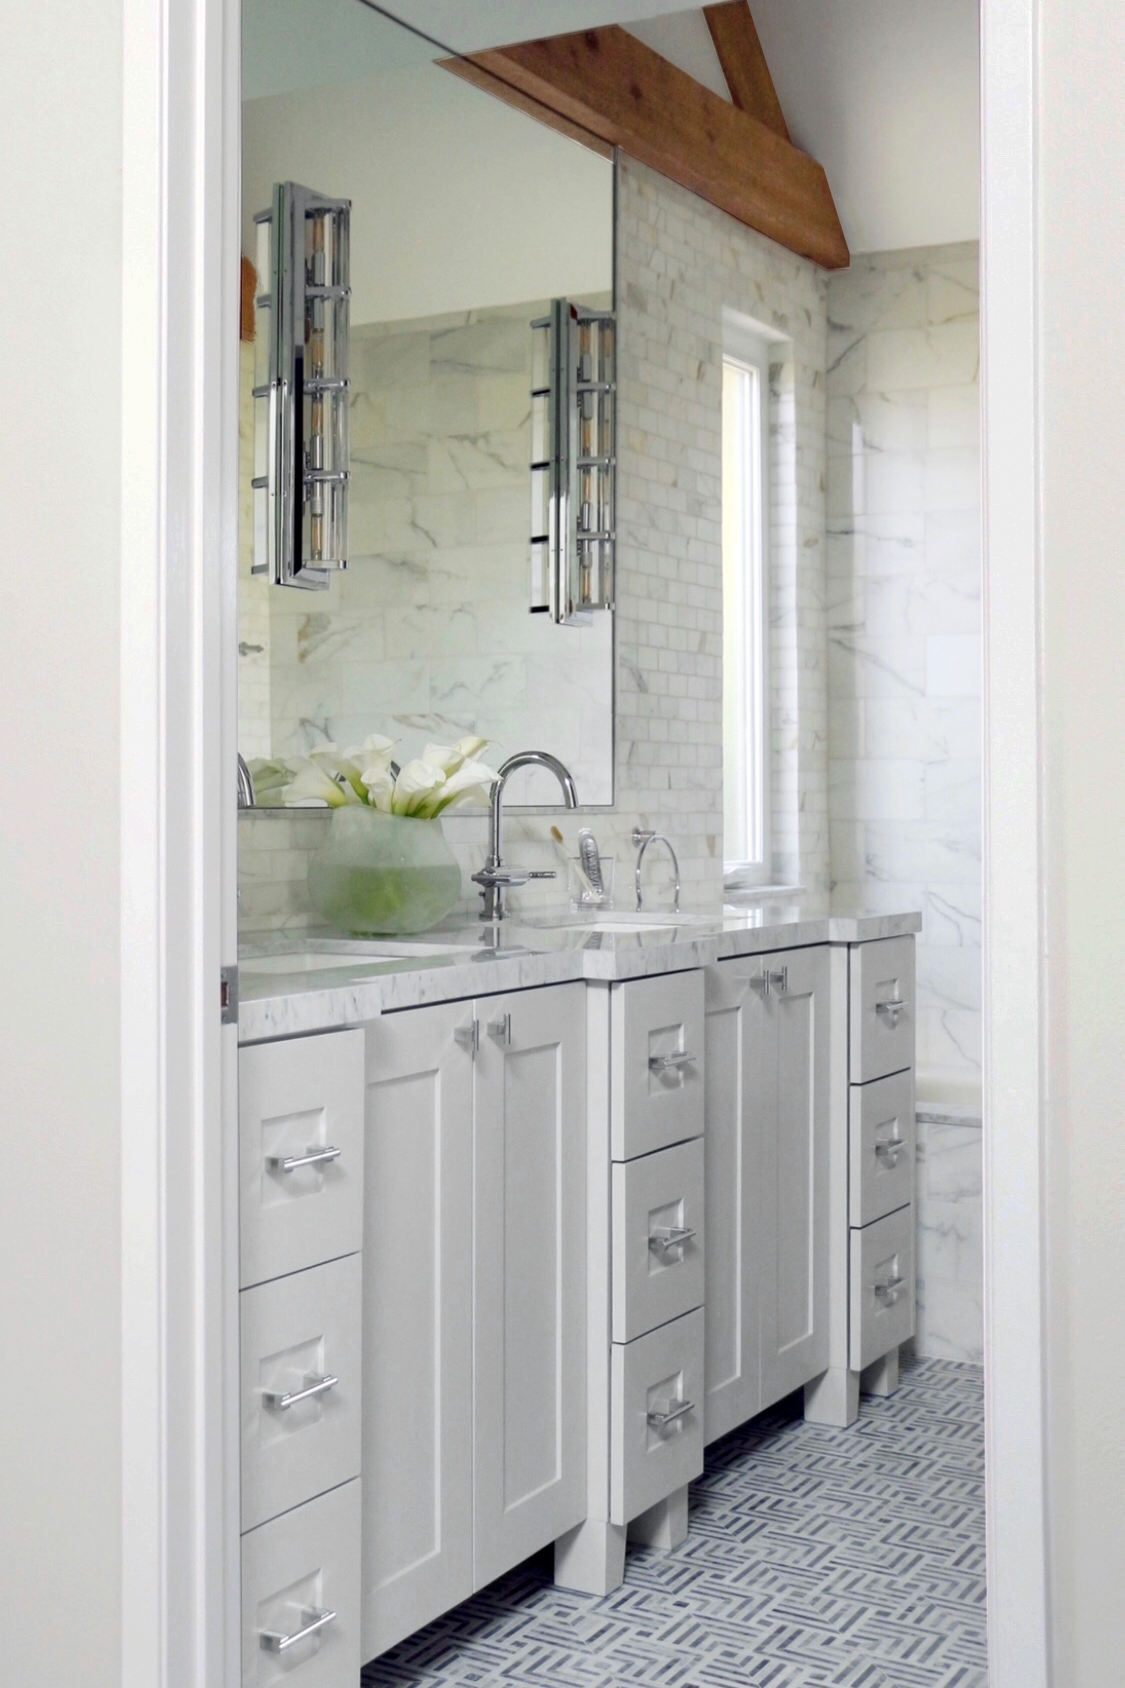 A DREAM BATHROOM MAKEOVER - Danielle and Andrew wanted to transform their bathroom and take it from drab to fab.